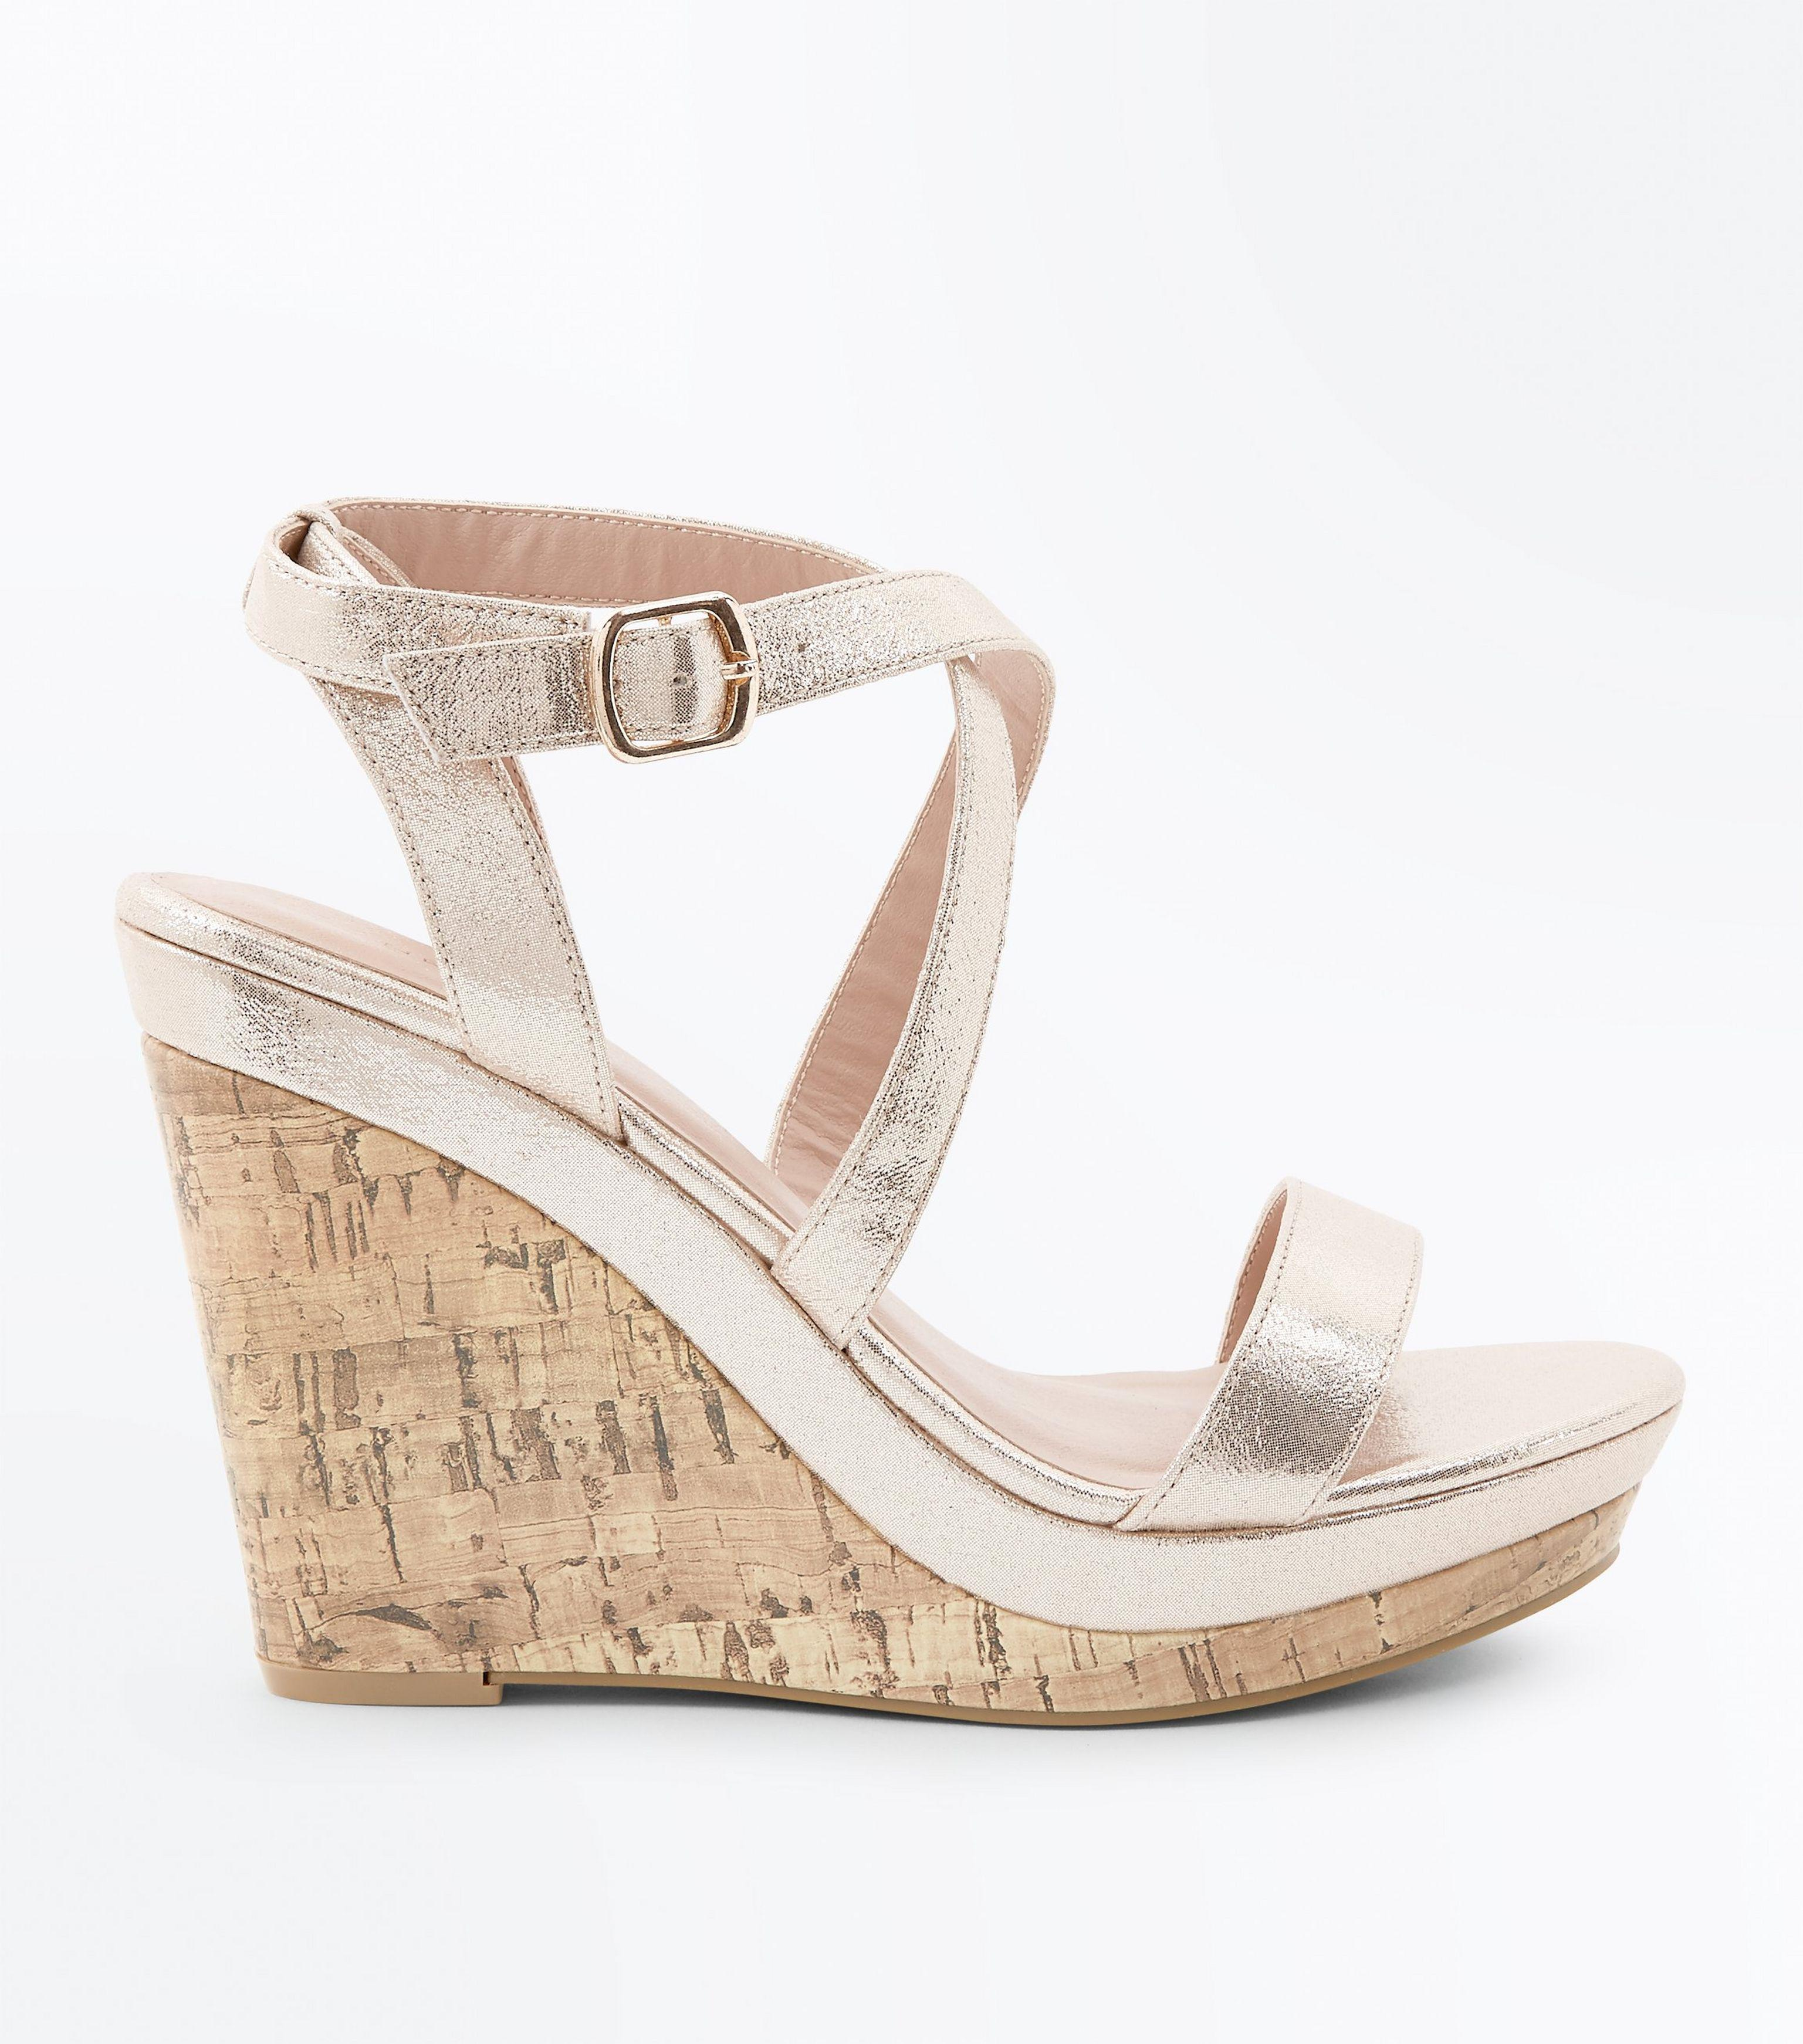 d6691b48795 New Look Gold Metallic Strappy Wedges